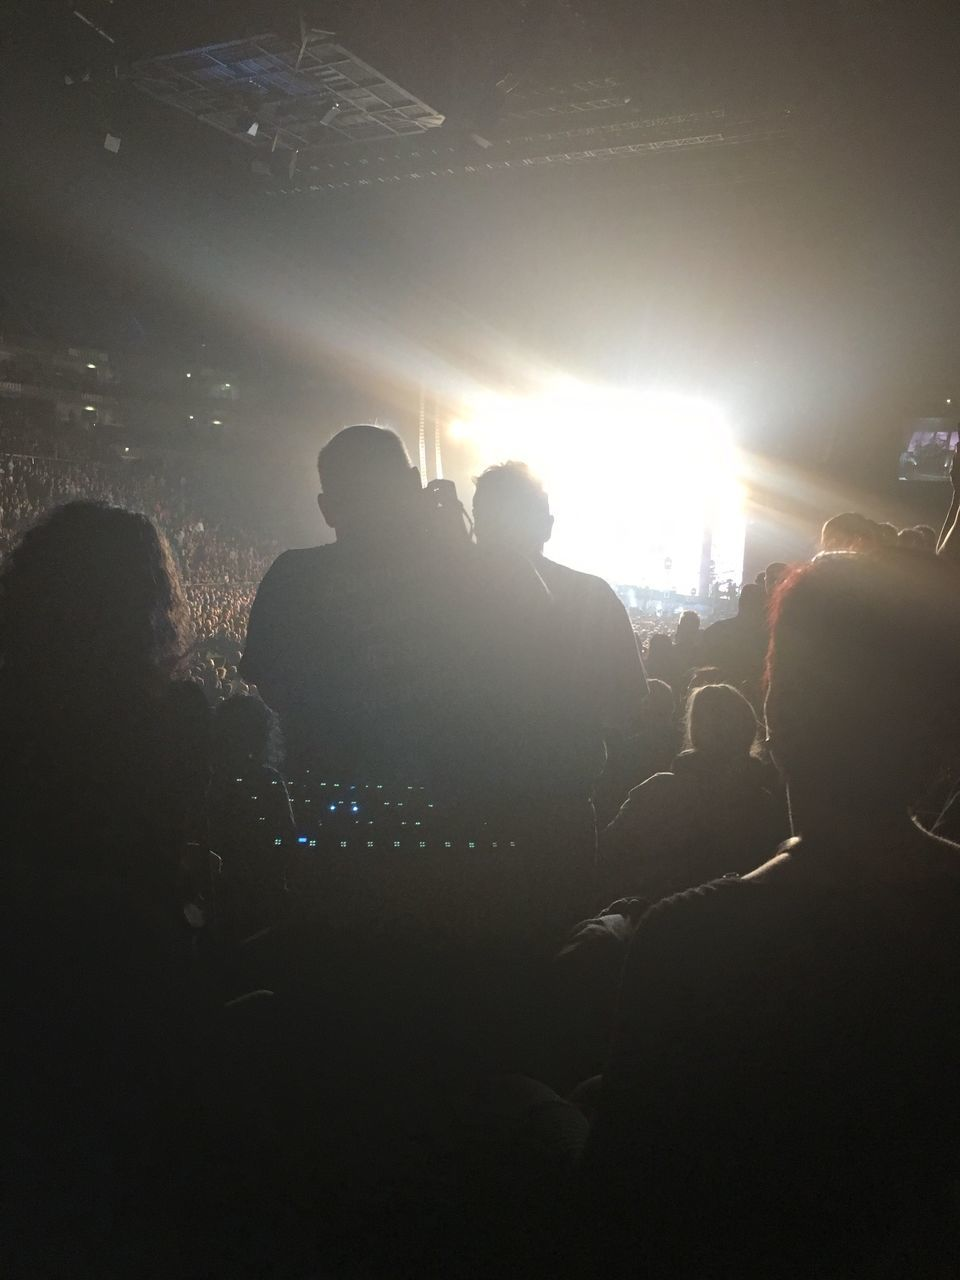 SILHOUETTE OF PEOPLE AT MUSIC FESTIVAL